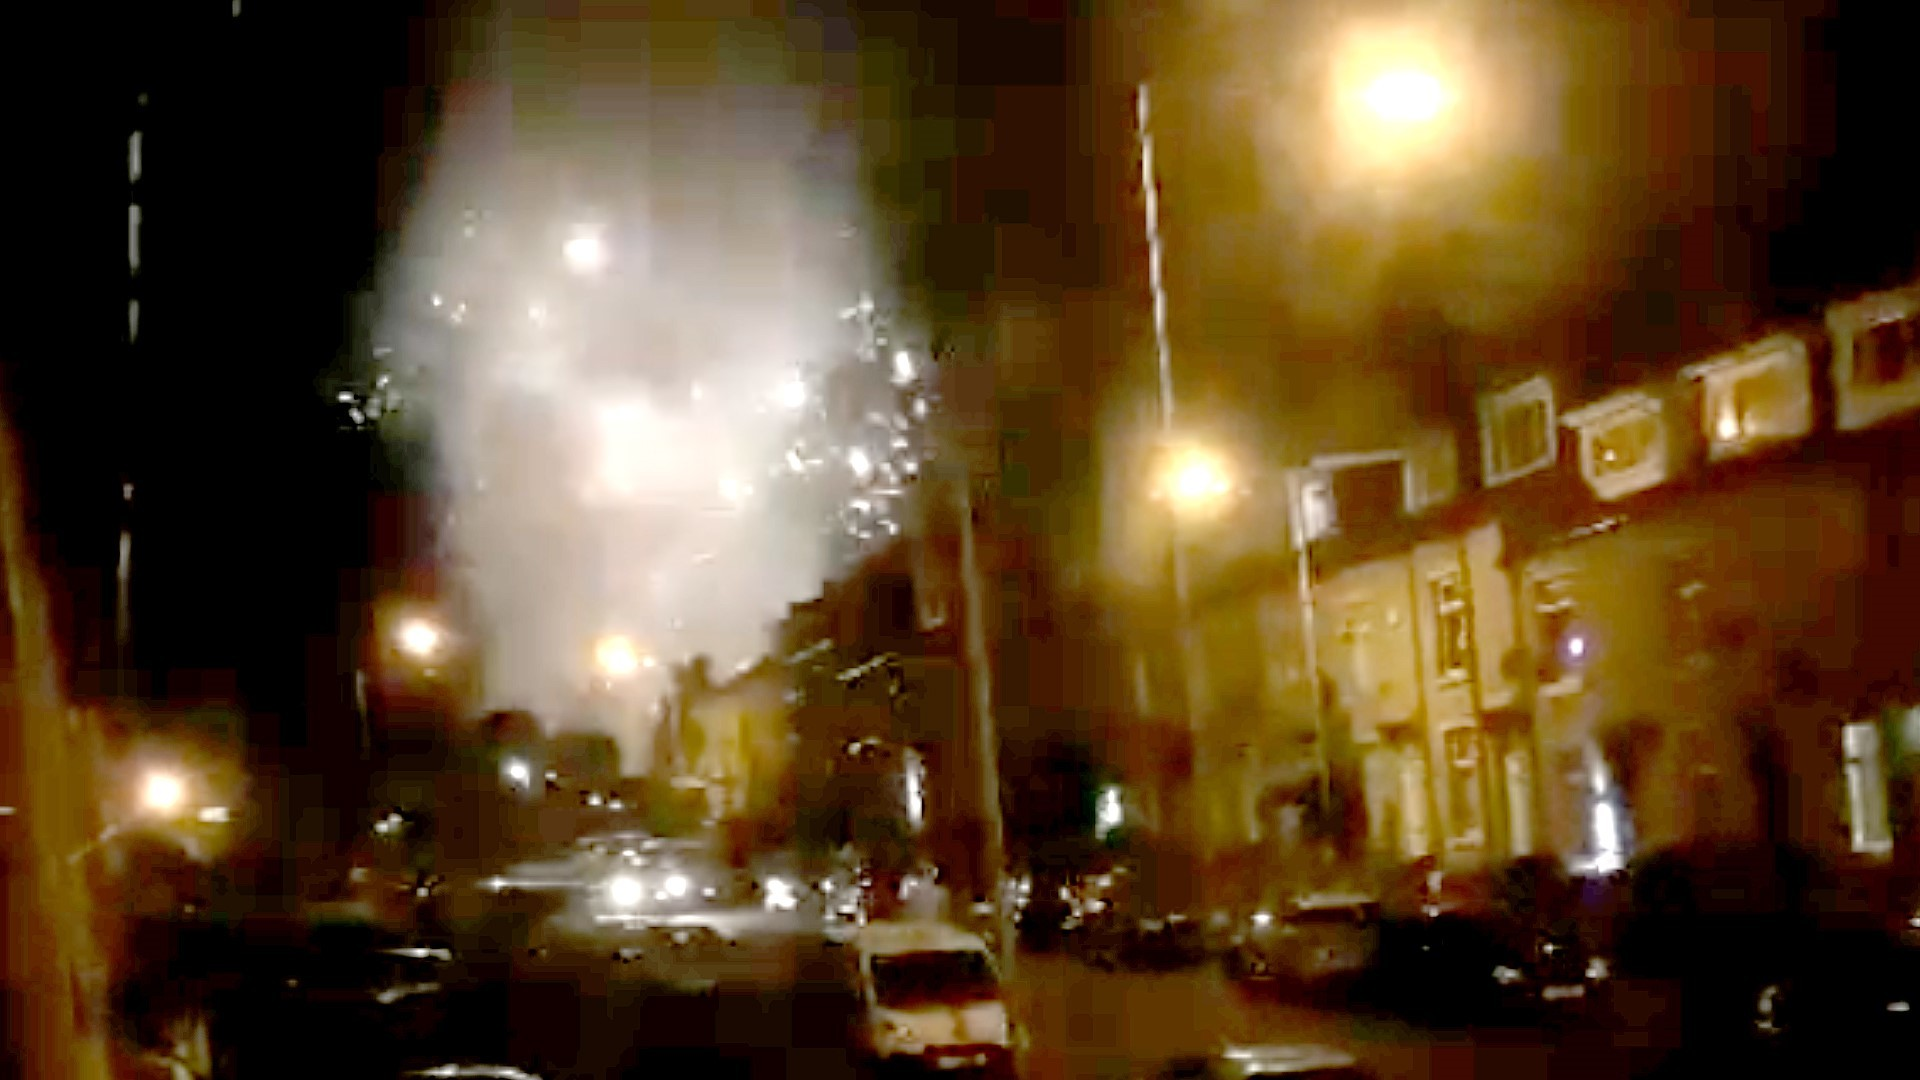 Major review into blight of fireworks in Bradford is proposed